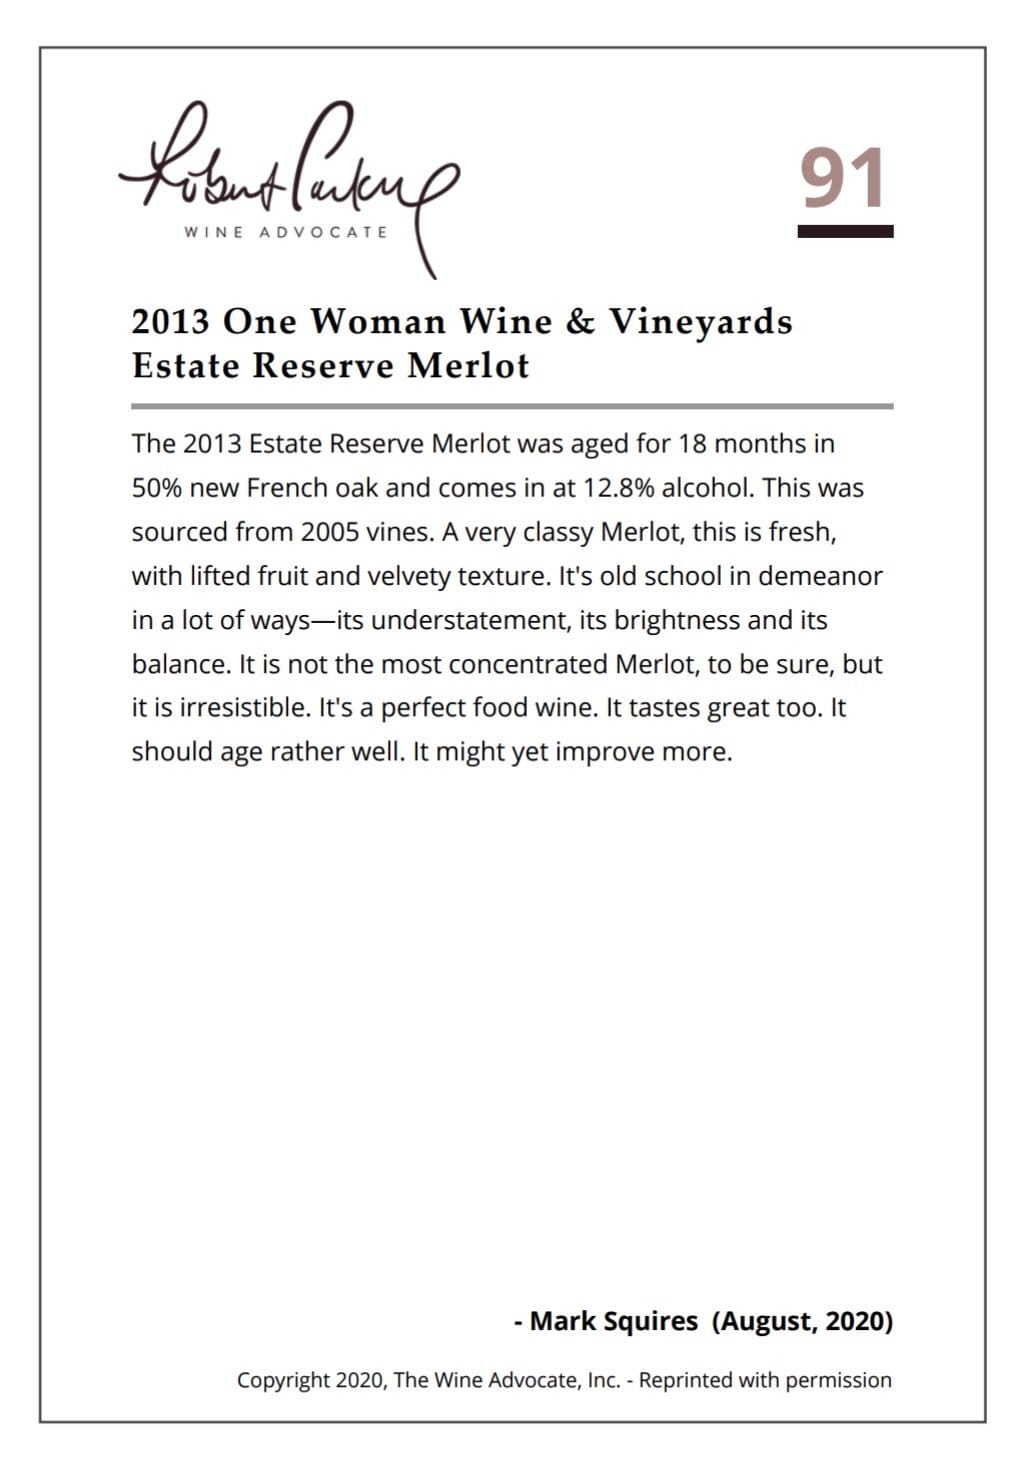 2013 One Woman Estate Reserve Merlot